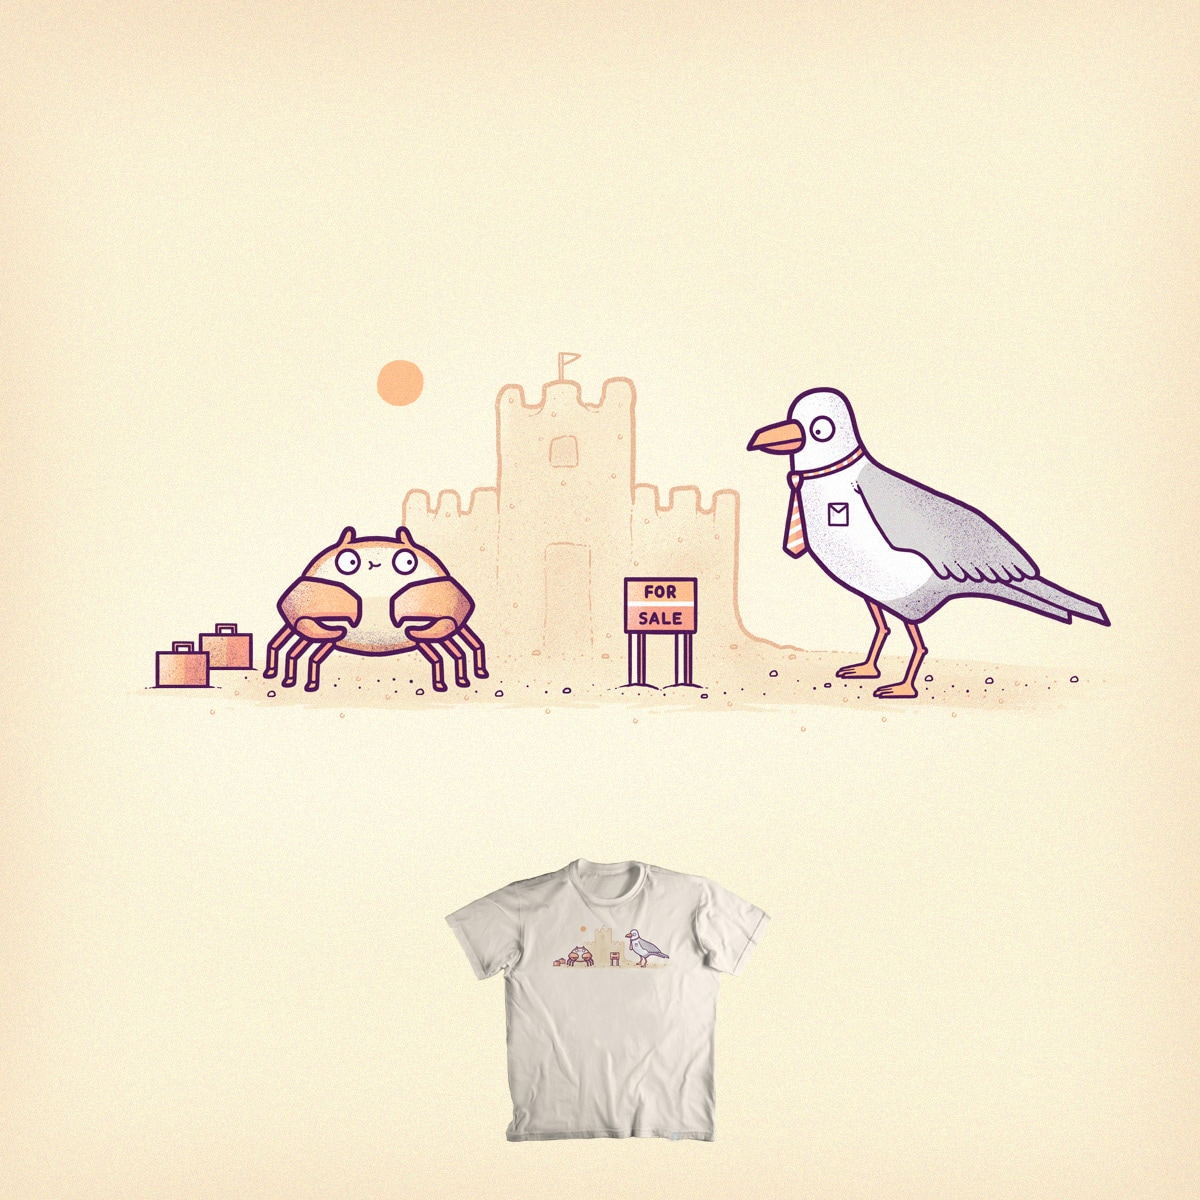 Seaside home by randyotter3000 on Threadless